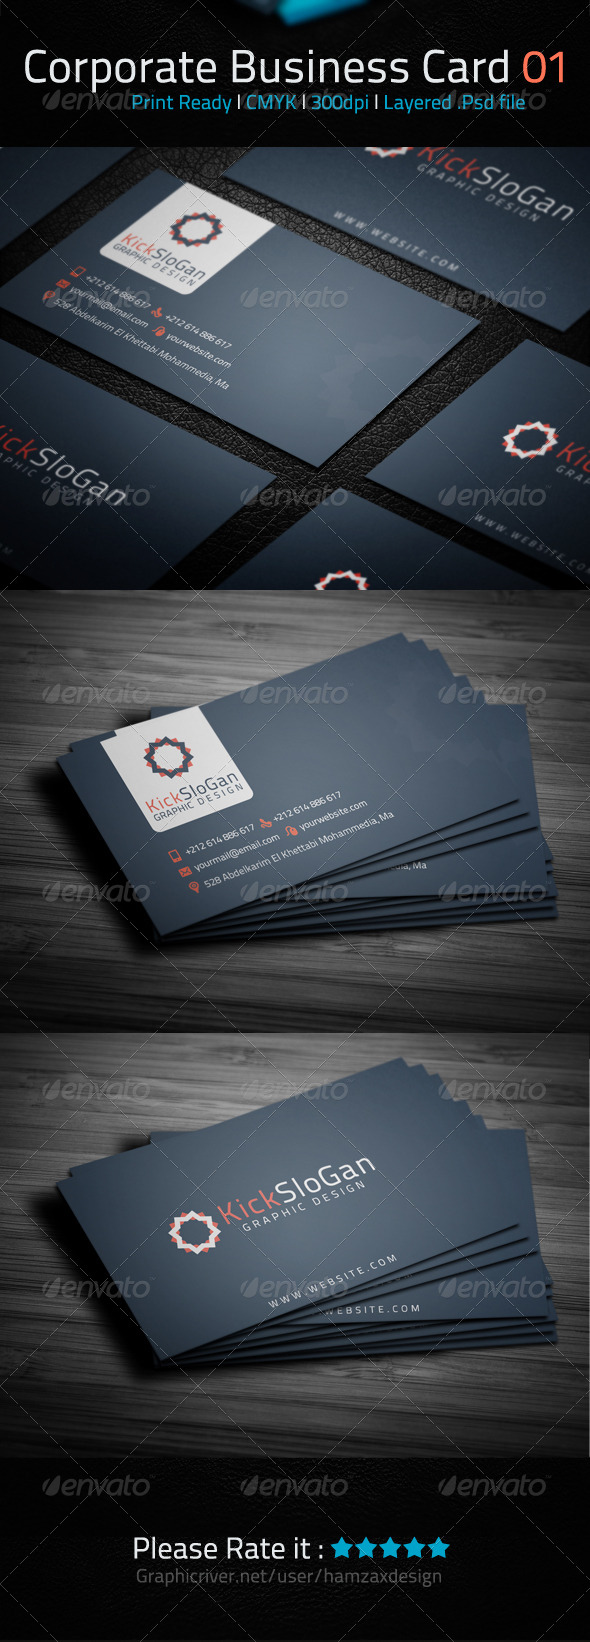 Corporate Business Card 01 - Corporate Business Cards